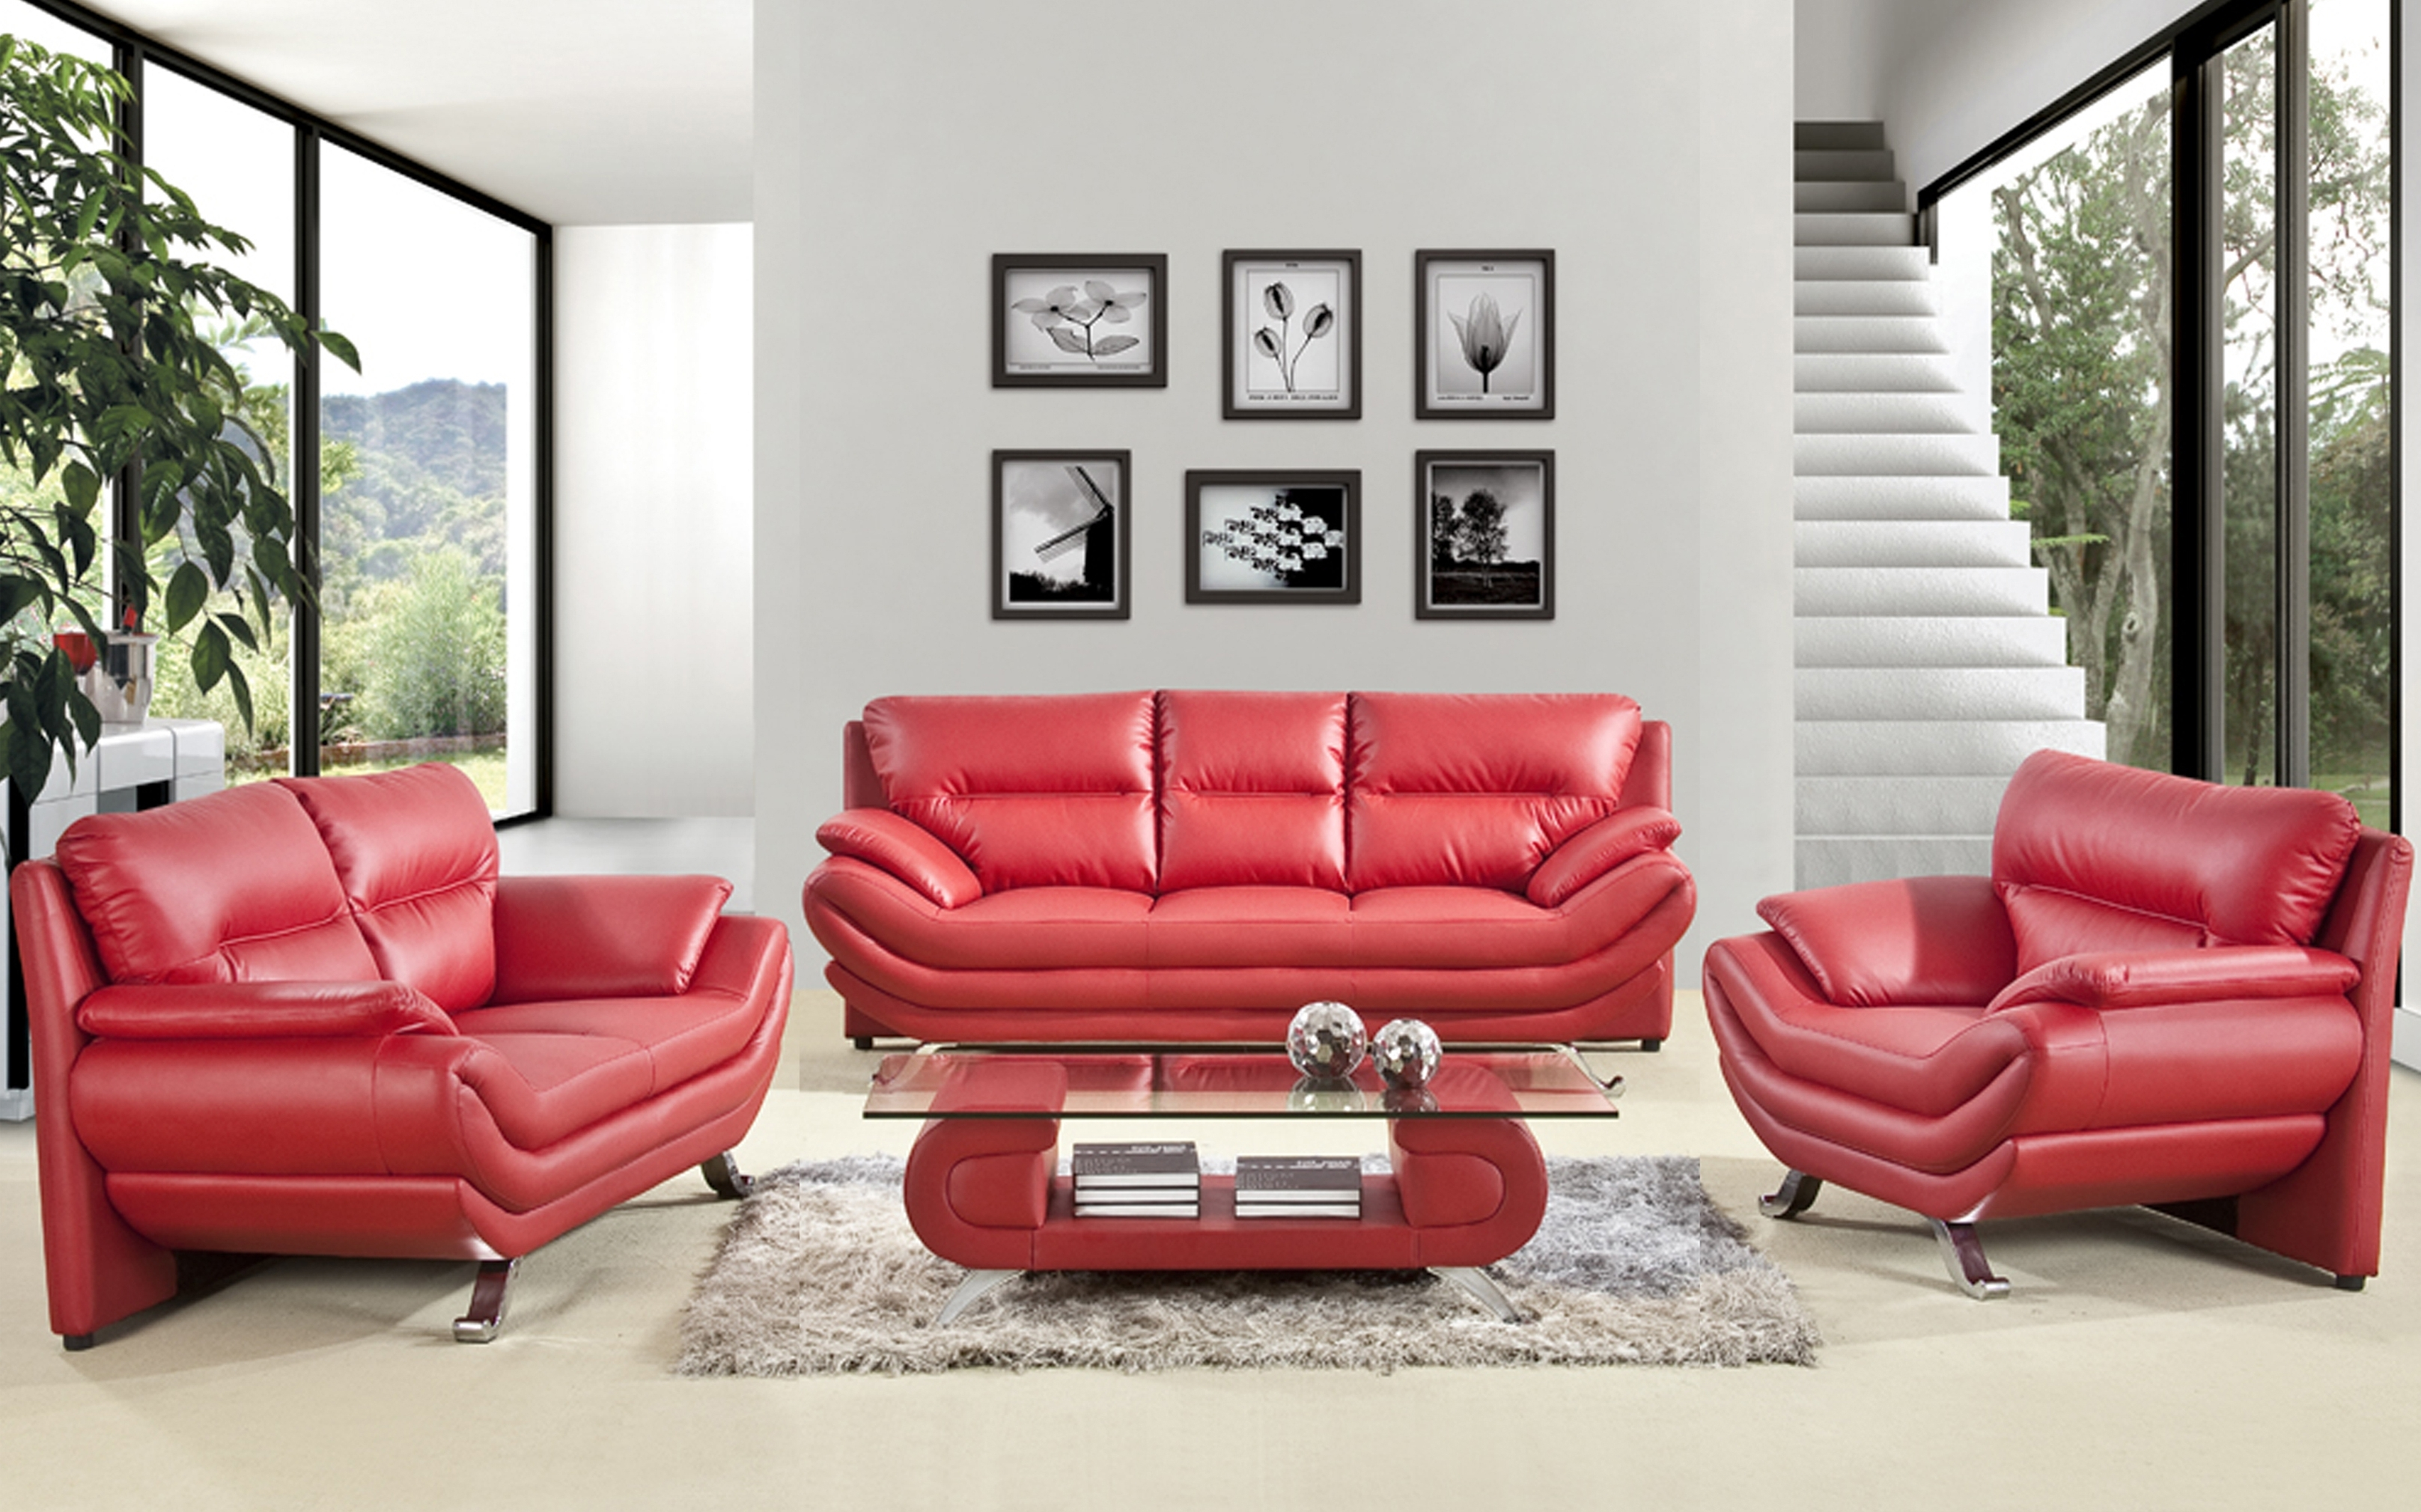 Preferred Magnificen Home Interior Decorating Living Room Design Ideas With Regarding Red Leather Couches For Living Room (View 11 of 20)